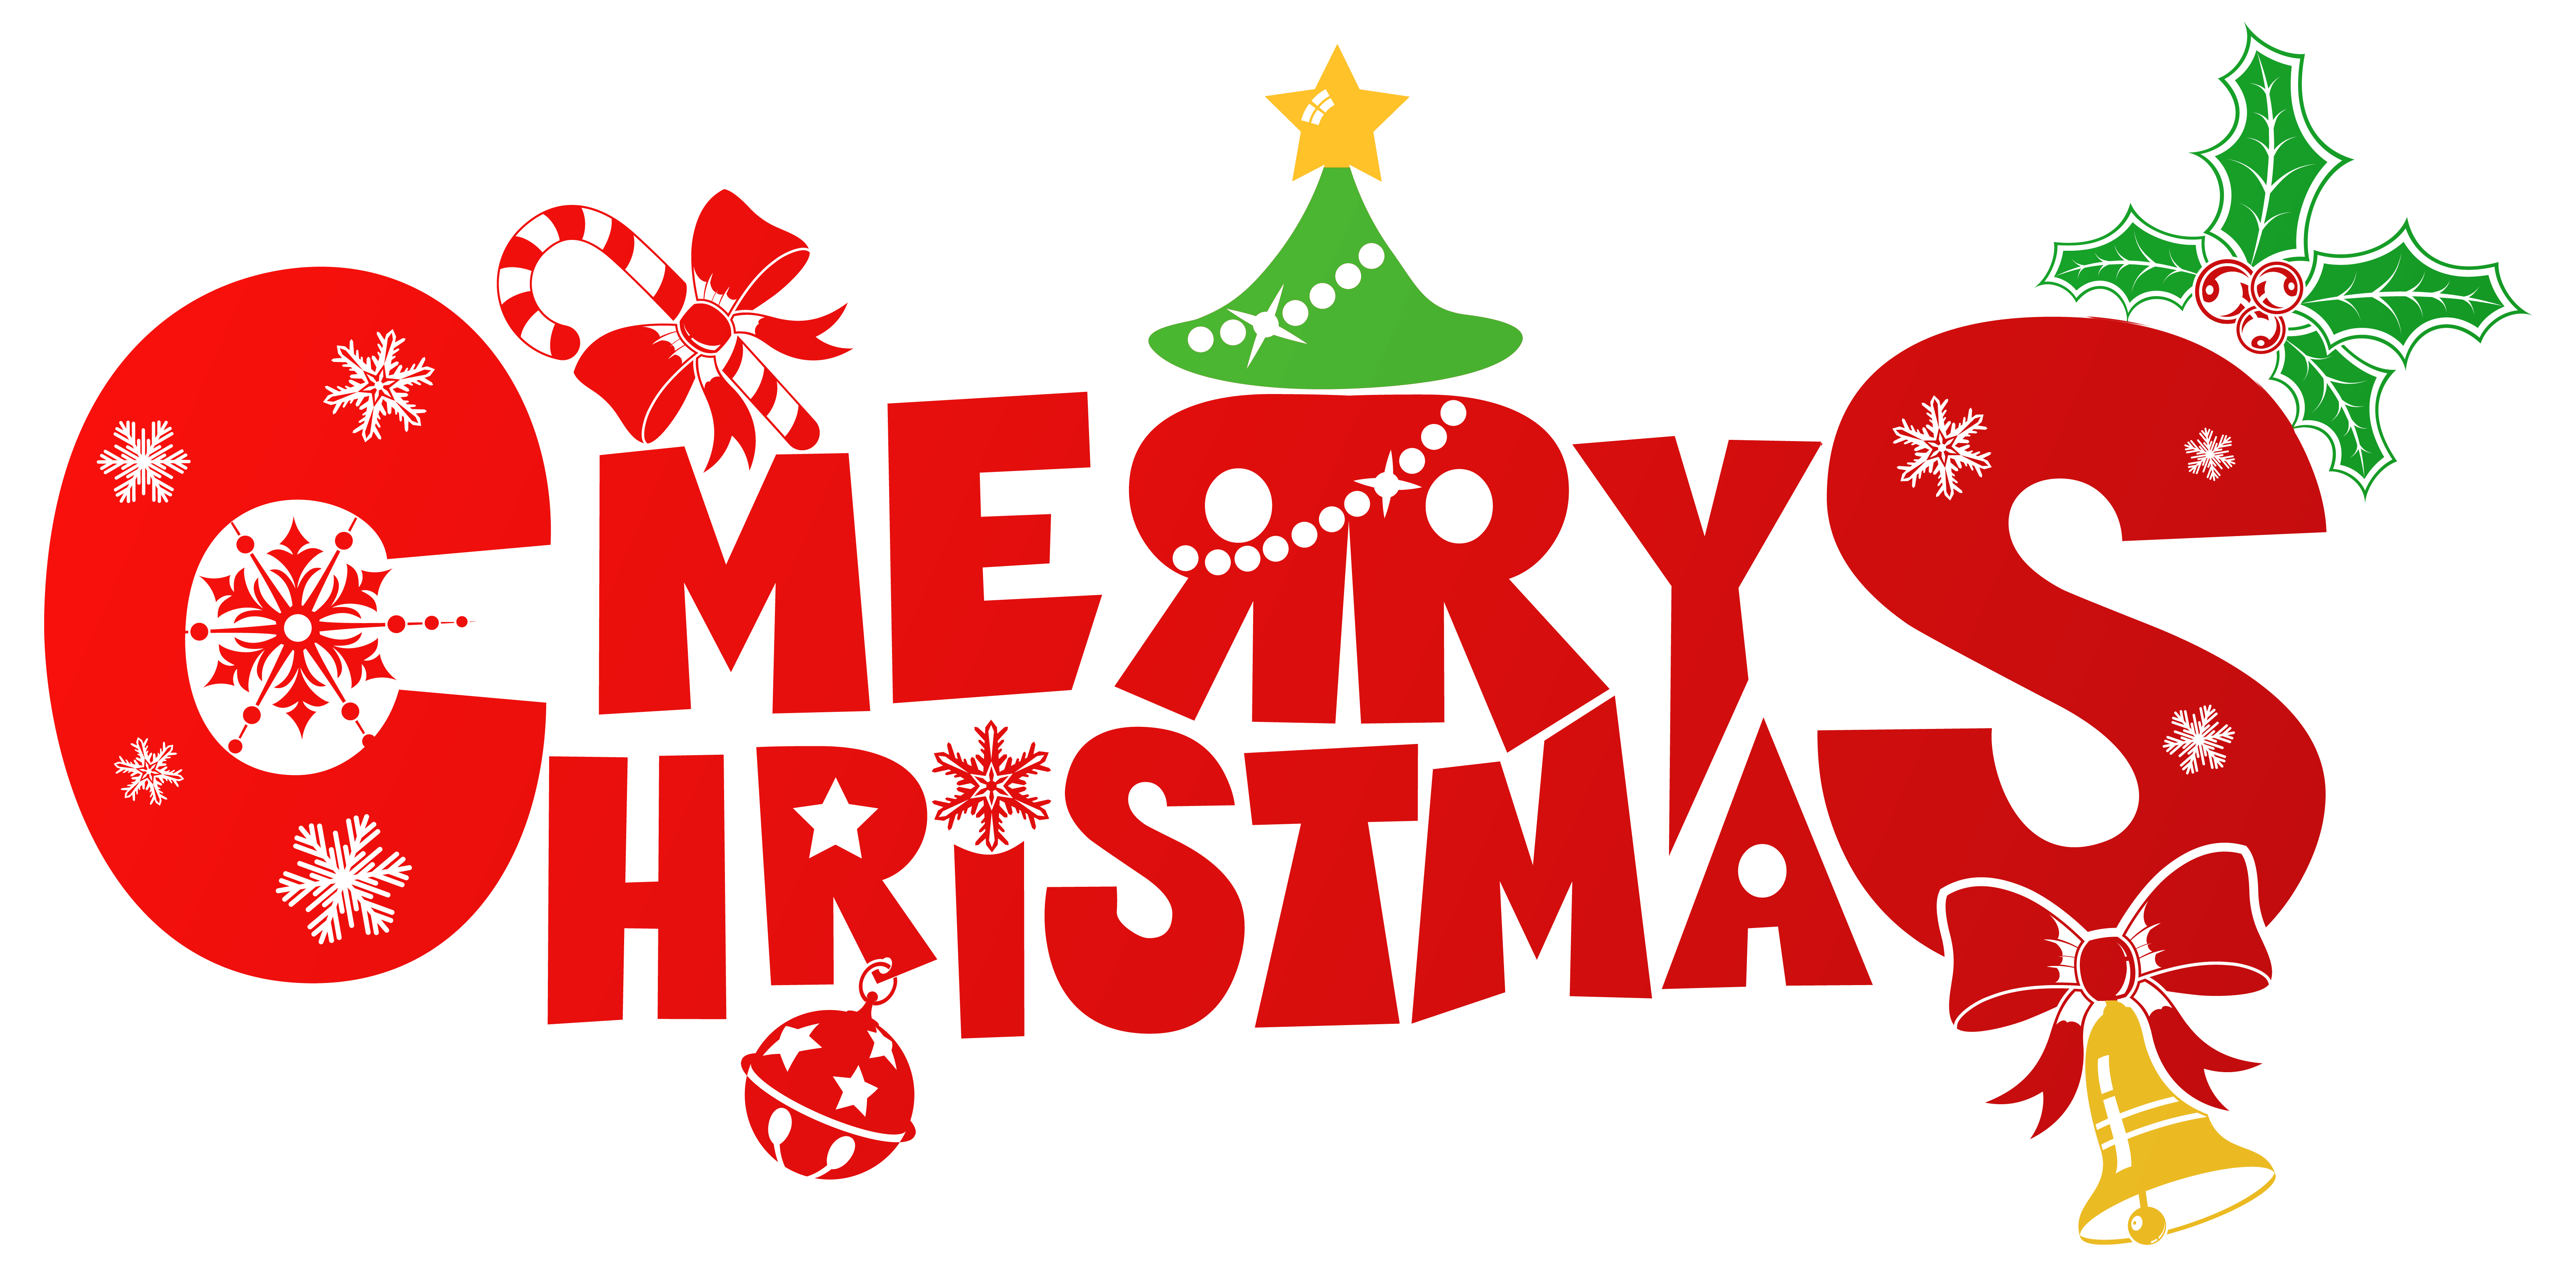 Merry christmas clipart words clip art black and white Clipart Merry Christmas – Merry Christmas And Happy New Year 2018 clip art black and white